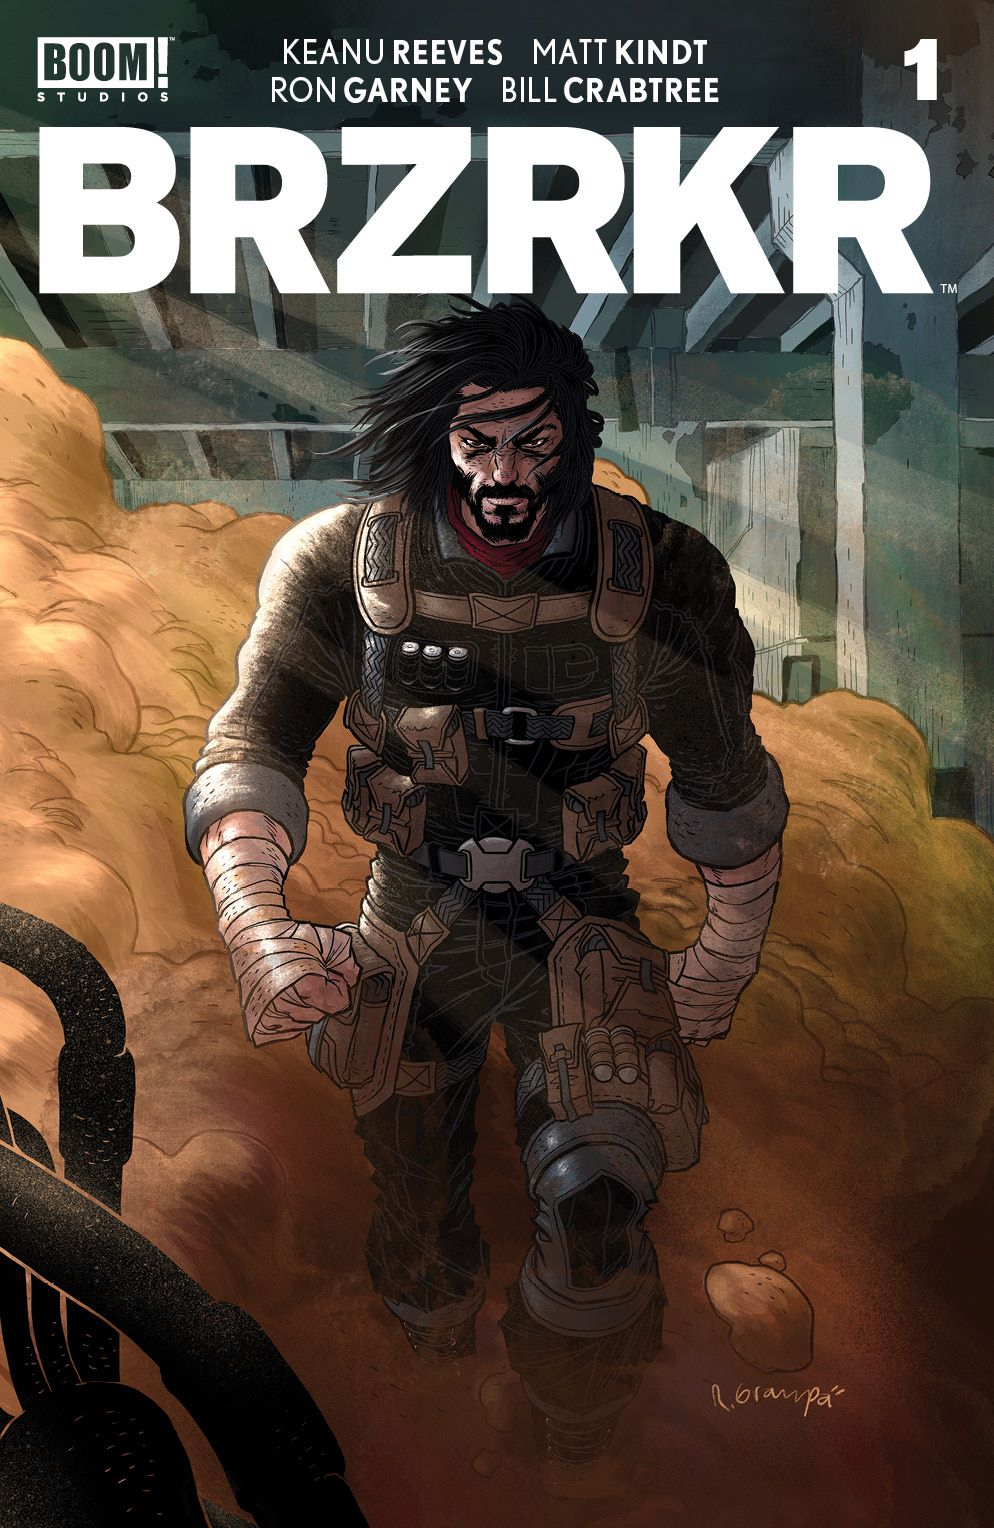 BRZRKR_001_Cover_H_Variant_001_LOW ComicList: BOOM! Studios New Releases for 03/03/2021